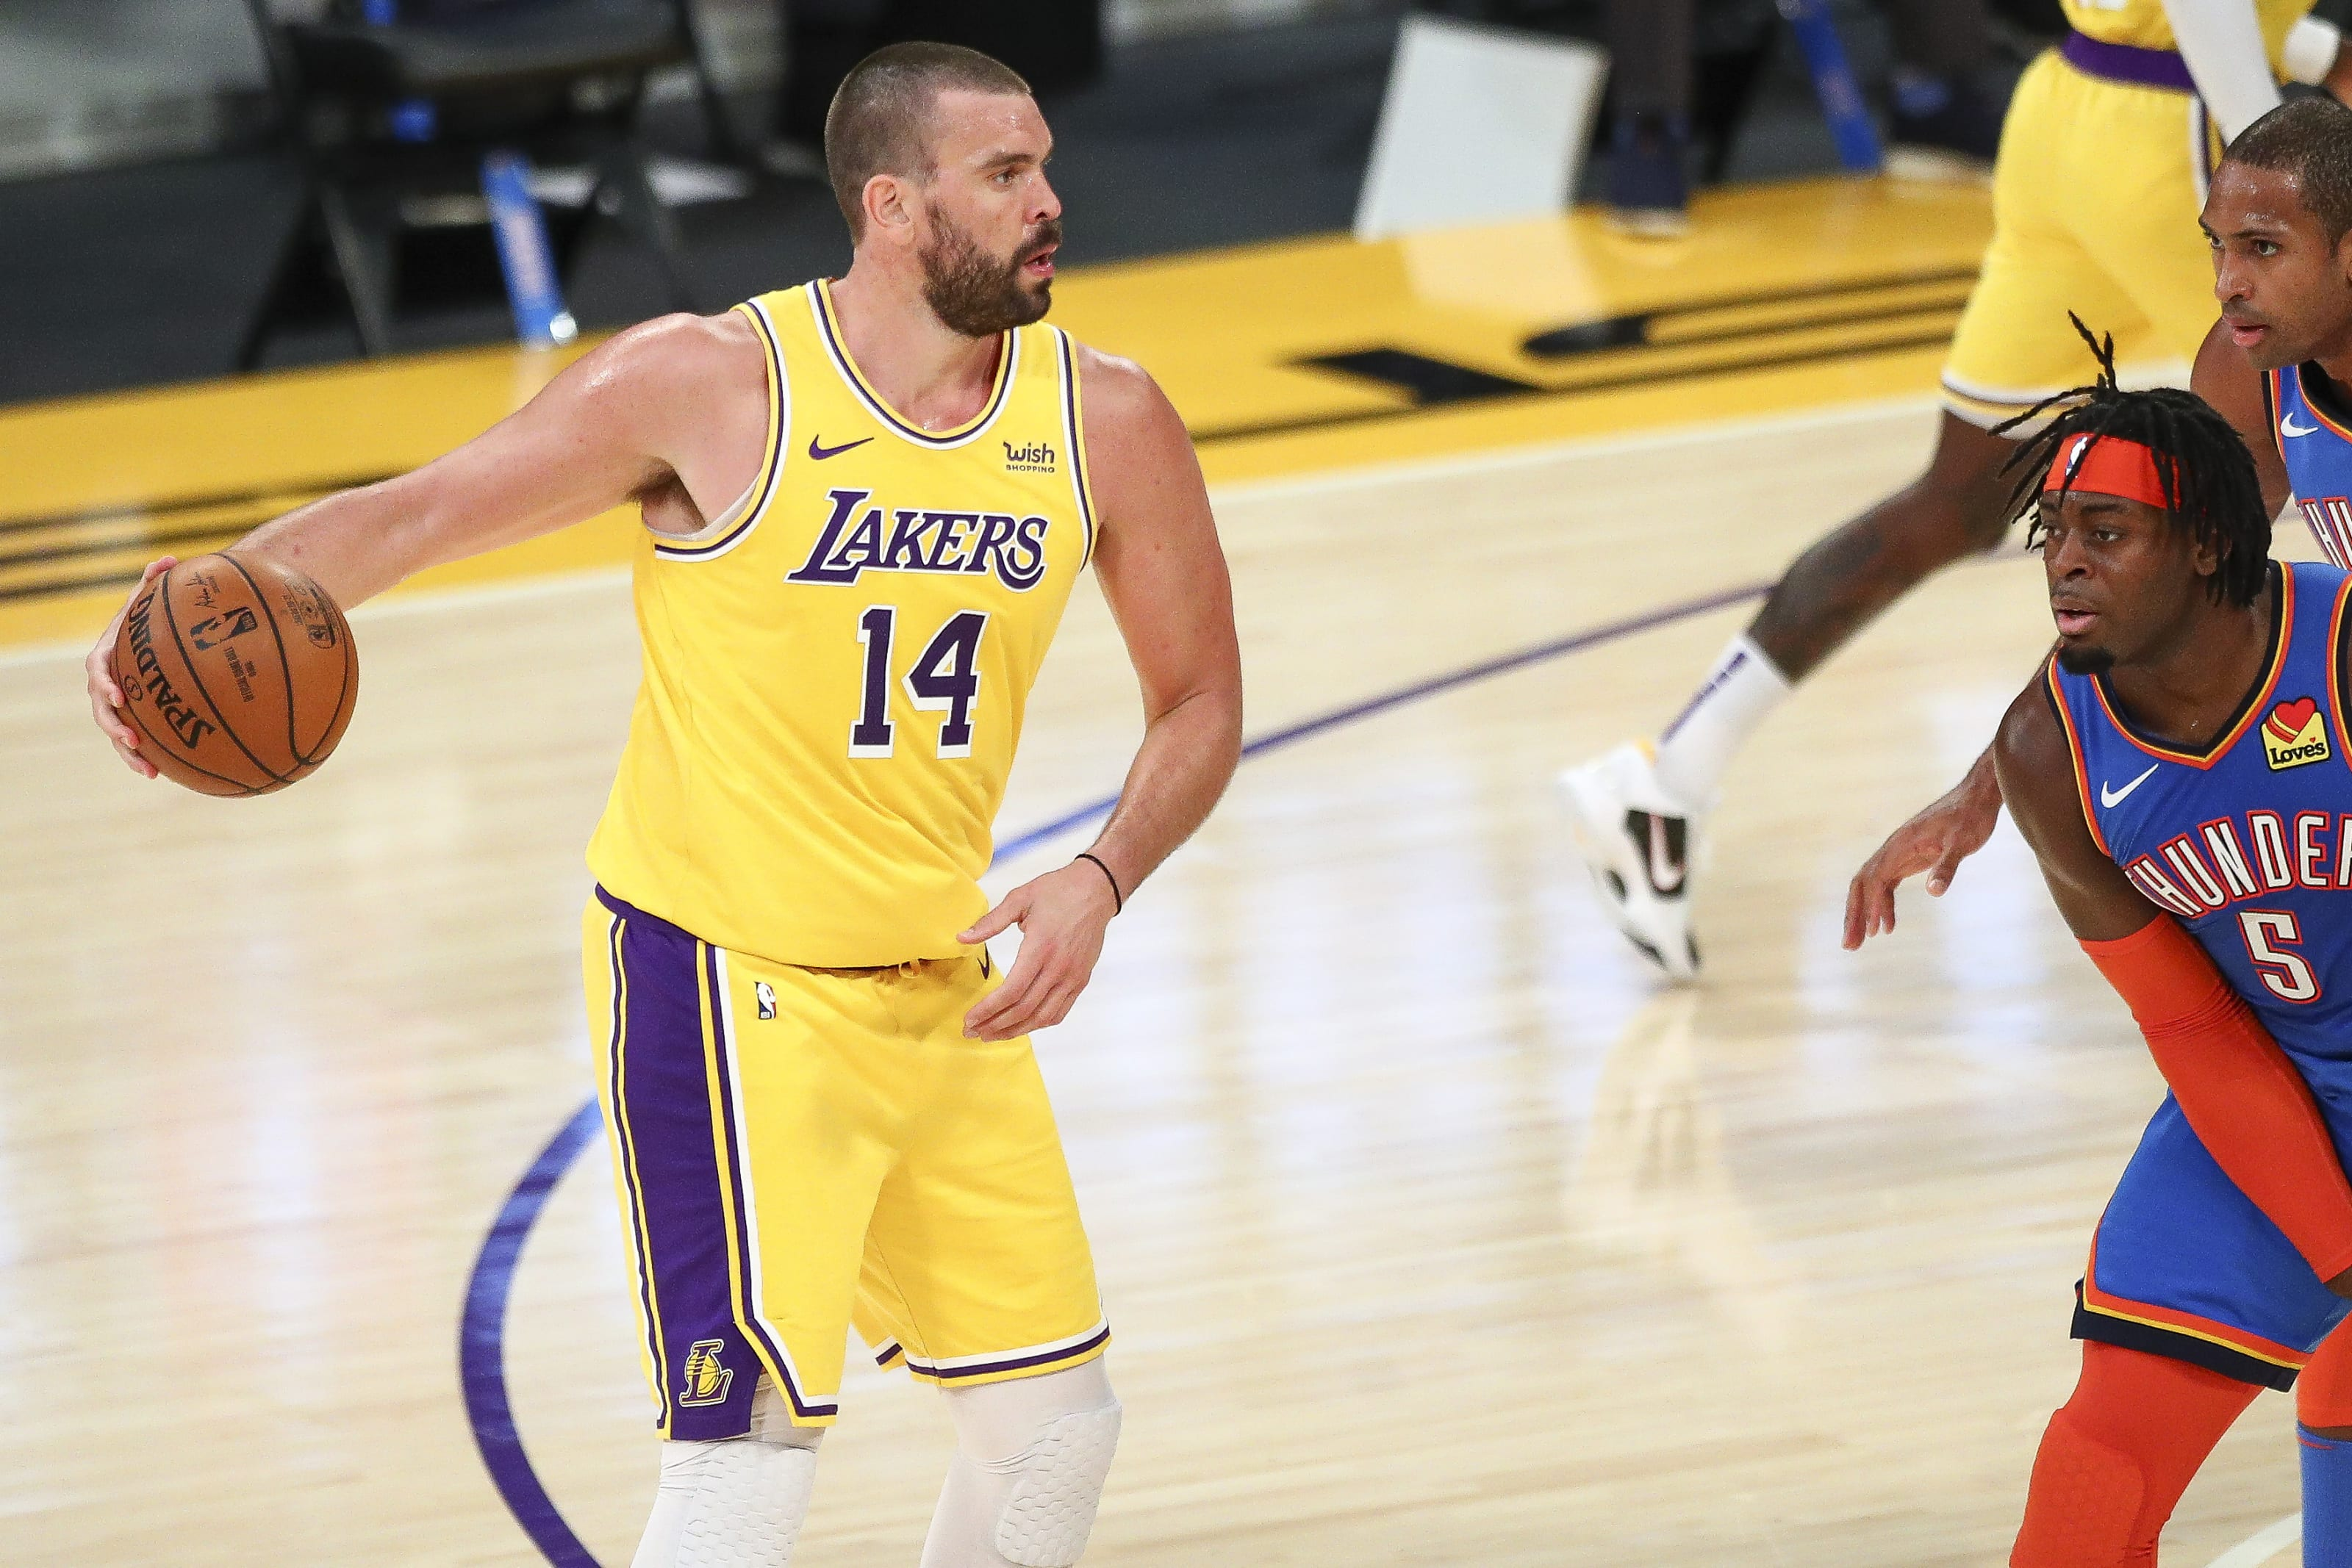 Should the Denver Nuggets make a move for Marc Gasol? Marc Gasol of the Los Angeles Lakers handles the ball in the game on 8 Feb. 2021. (Photo by Meg Oliphant/Getty Images)